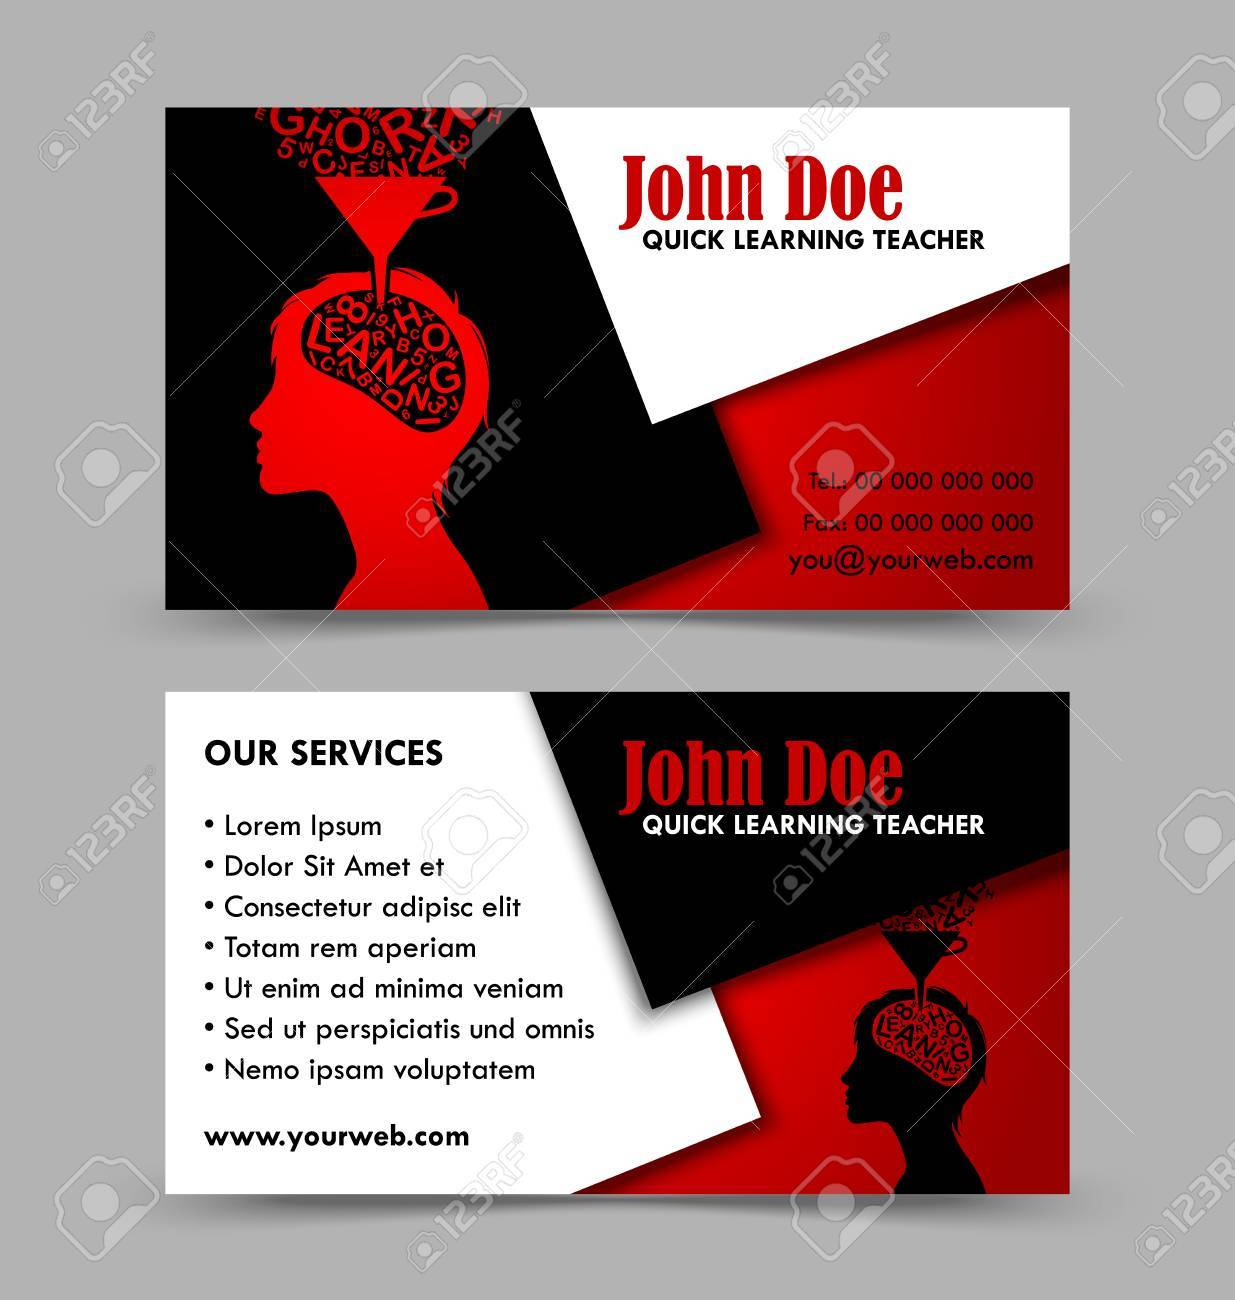 front and back side of quick learning theme business card isolated on grey background stock vector